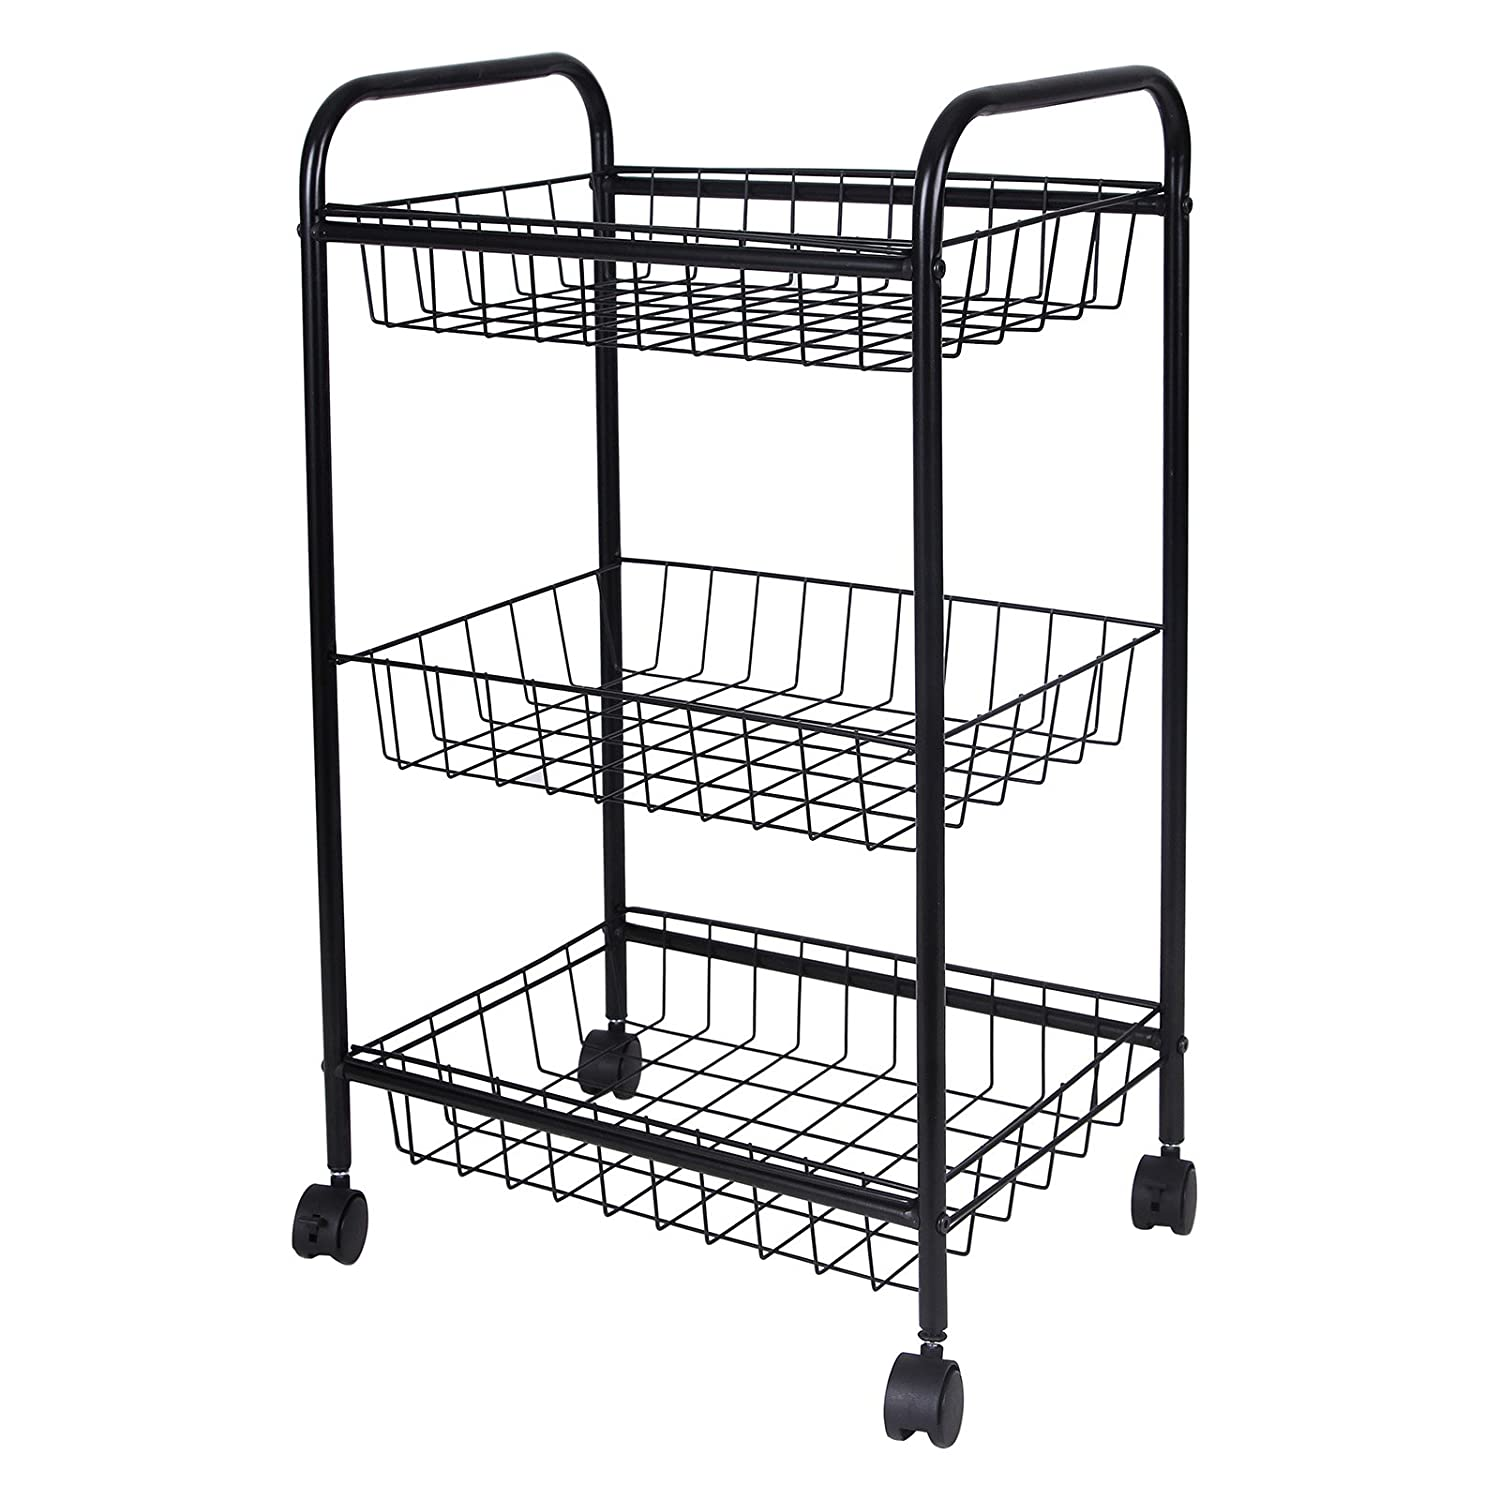 Songmics 3 Tiers Rolling Cart for Kitchen Pantry Office Bathroom Laundry All-Purpose Utility Storage Cart with wheels Black UBSC03H